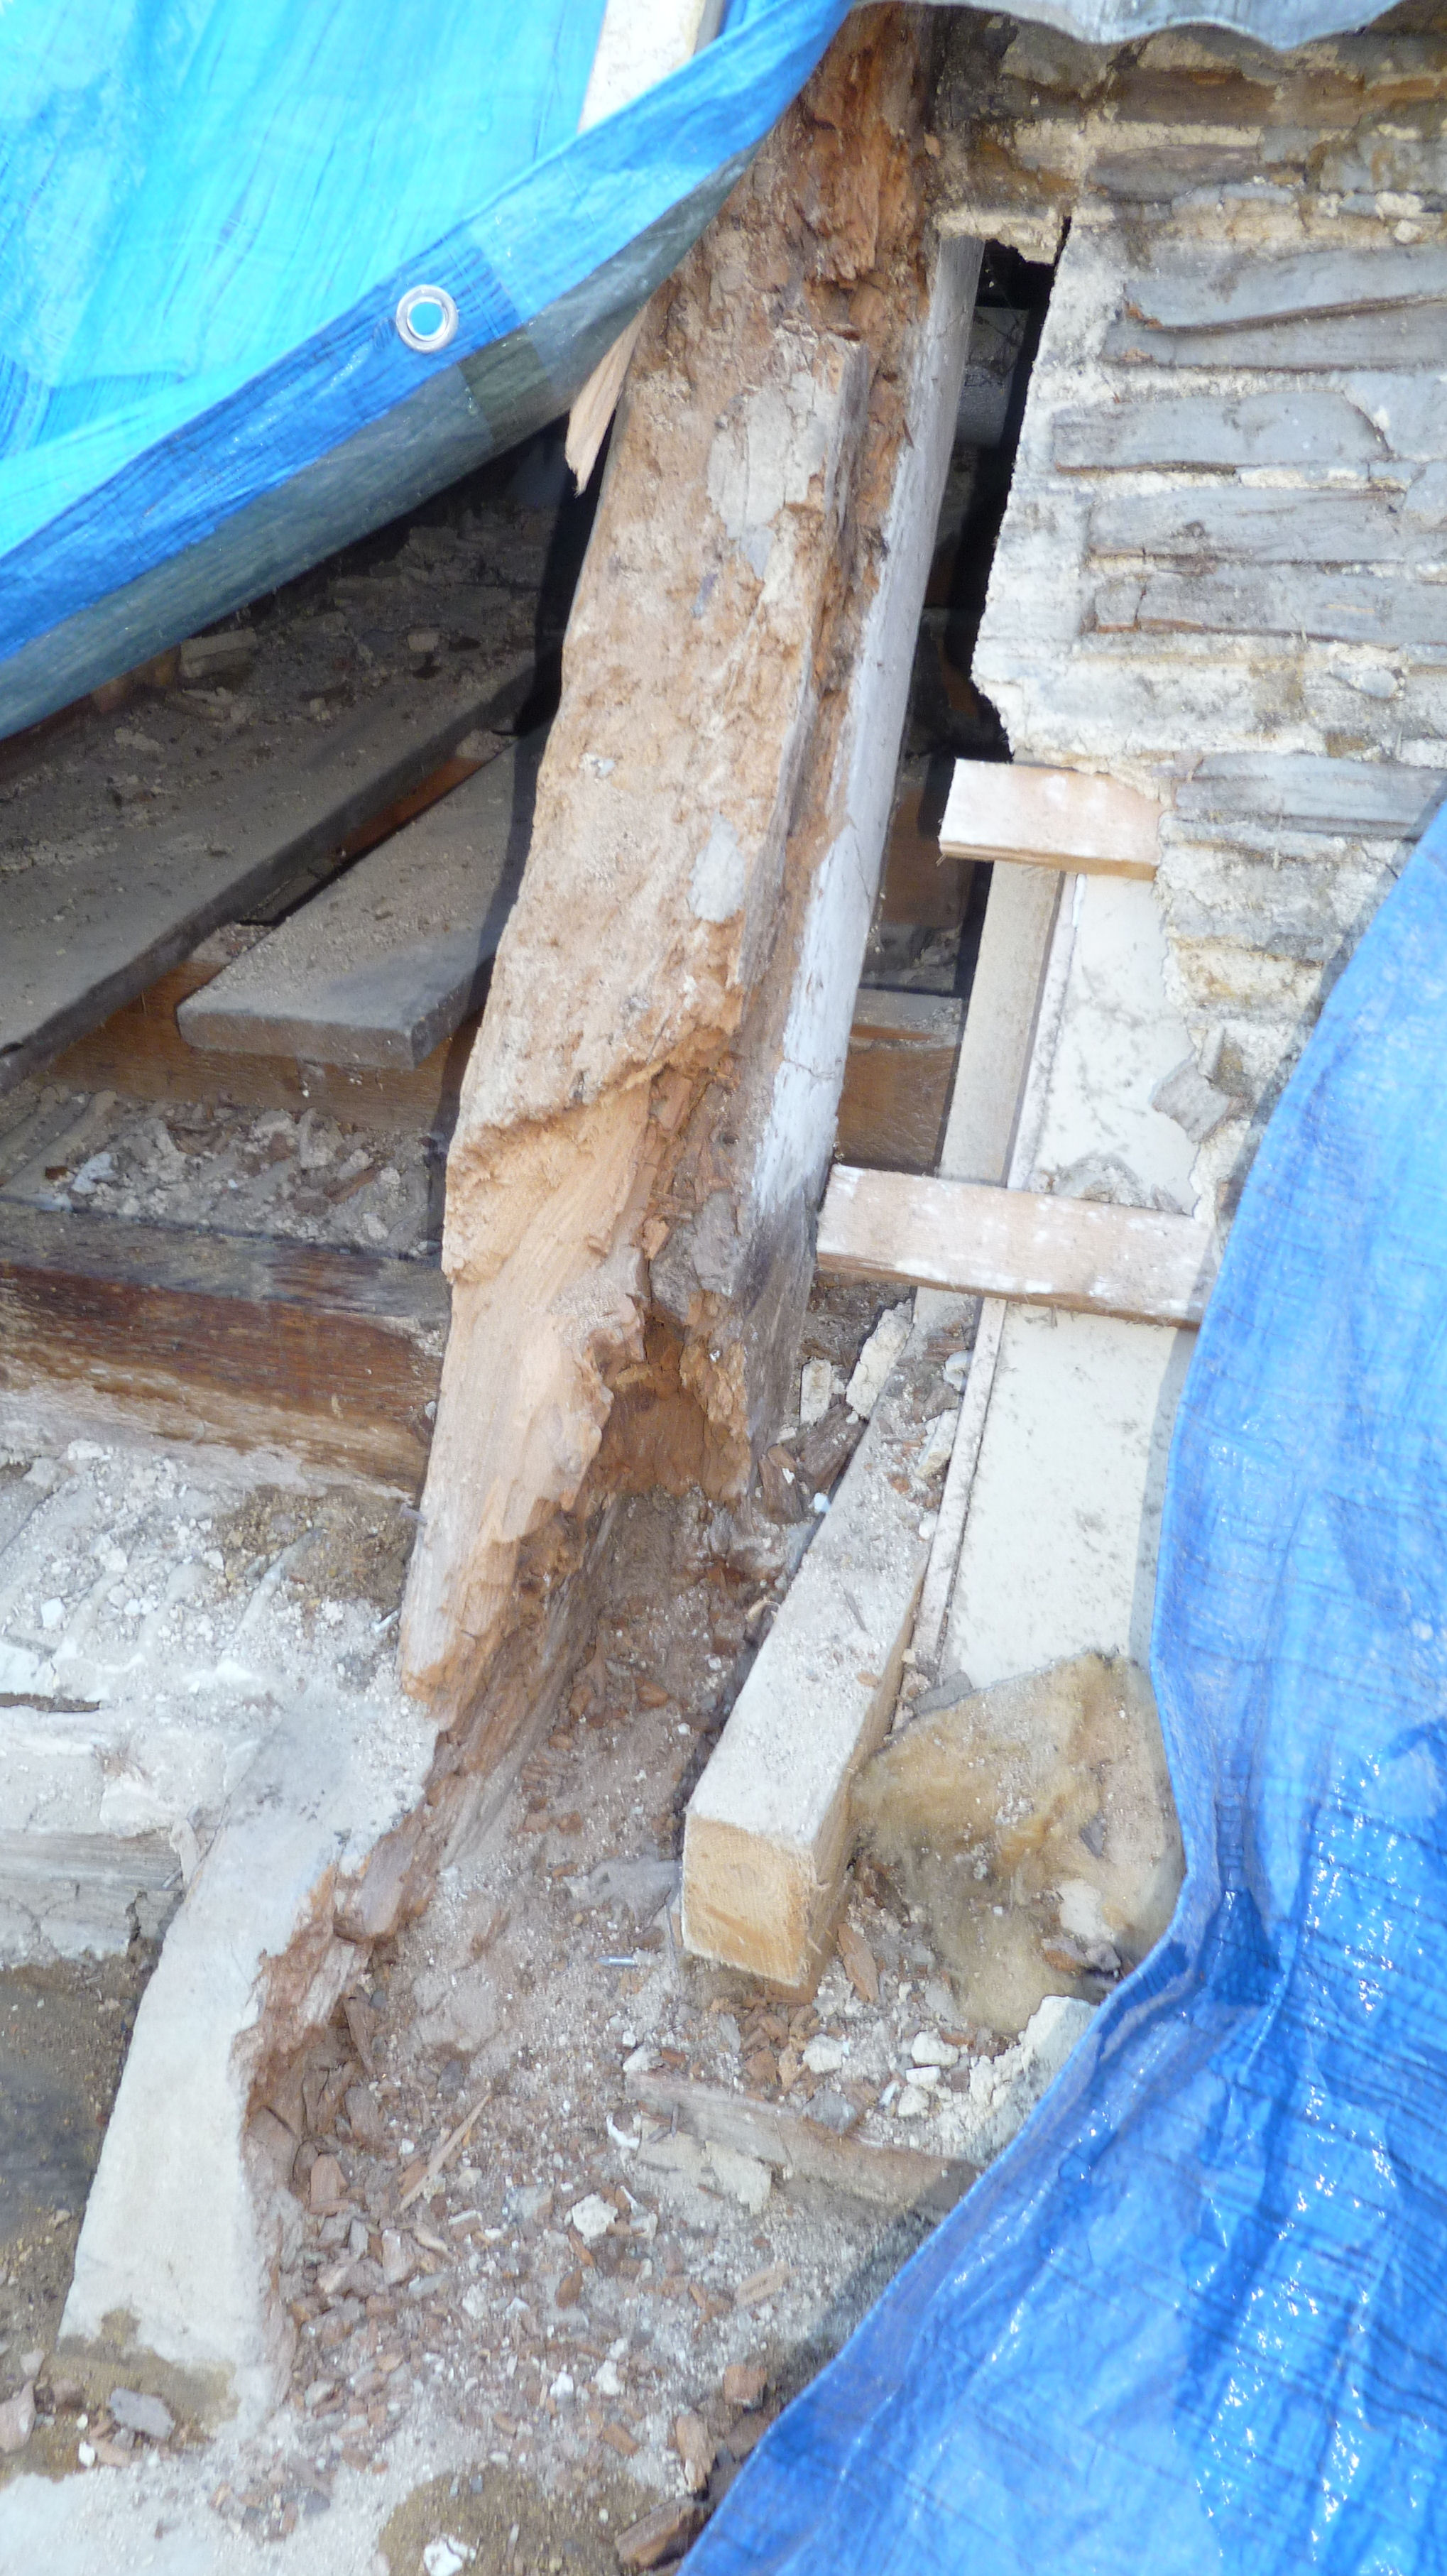 Decayed Truss End Timber in need of repair.